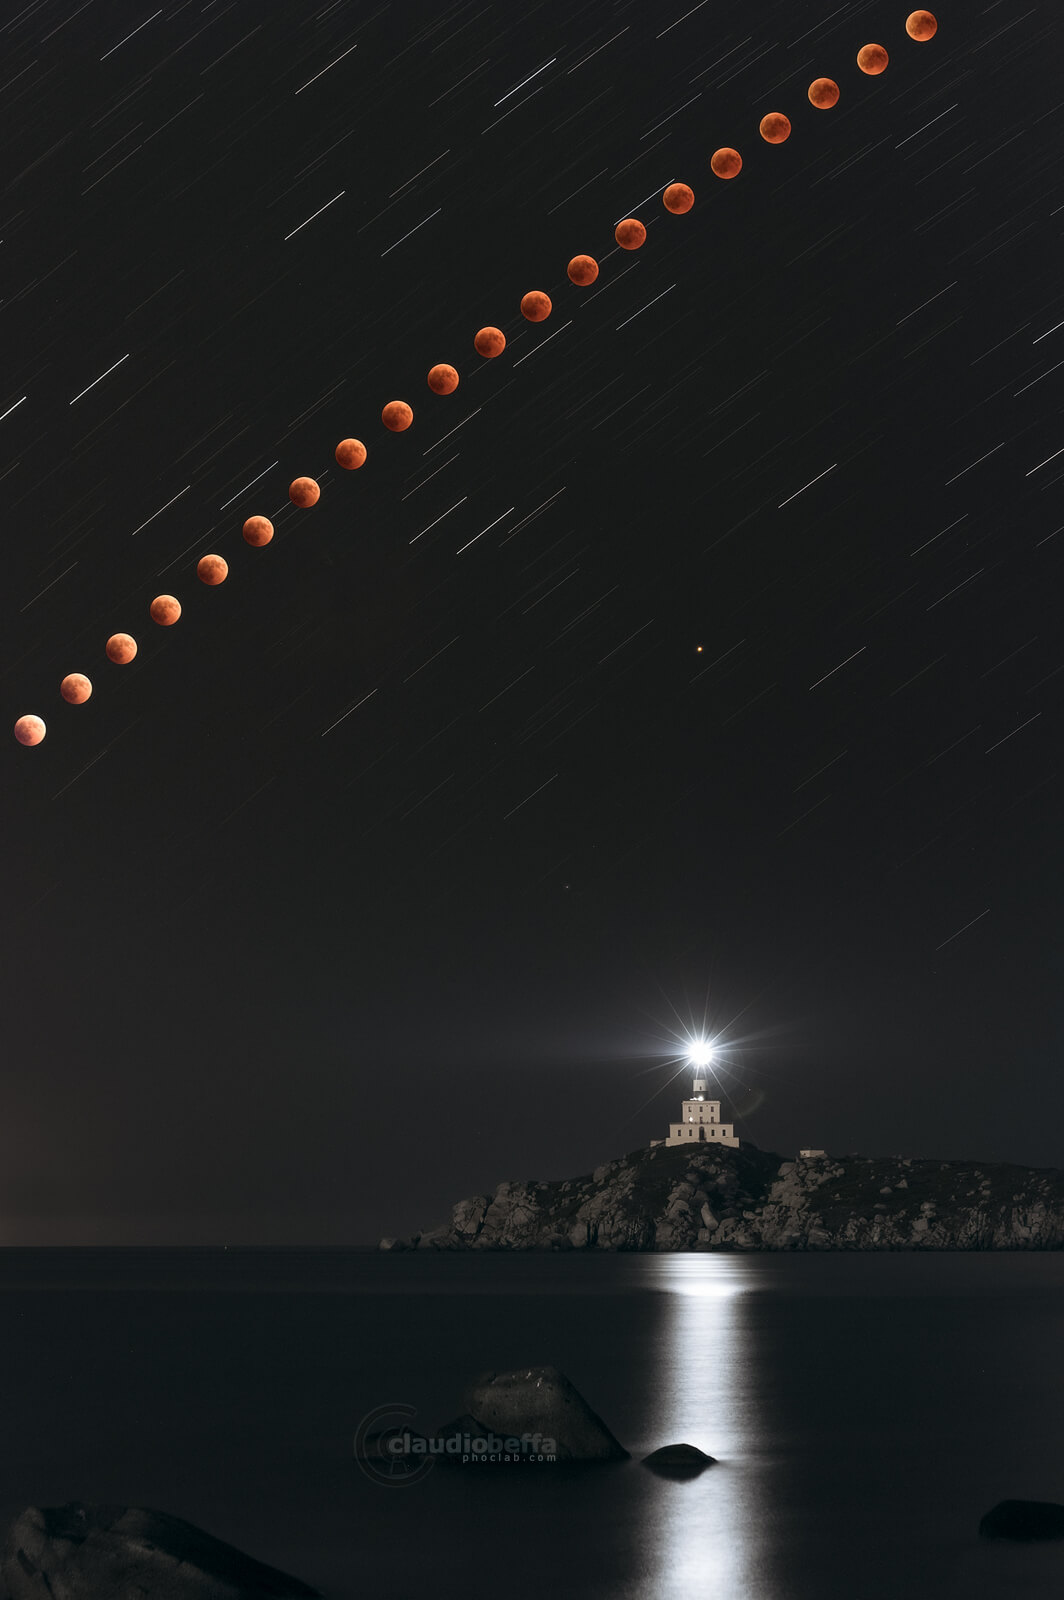 Toward the totality, eclipse, totality, moon, mars, night, lighthouse, astrophotography, composite